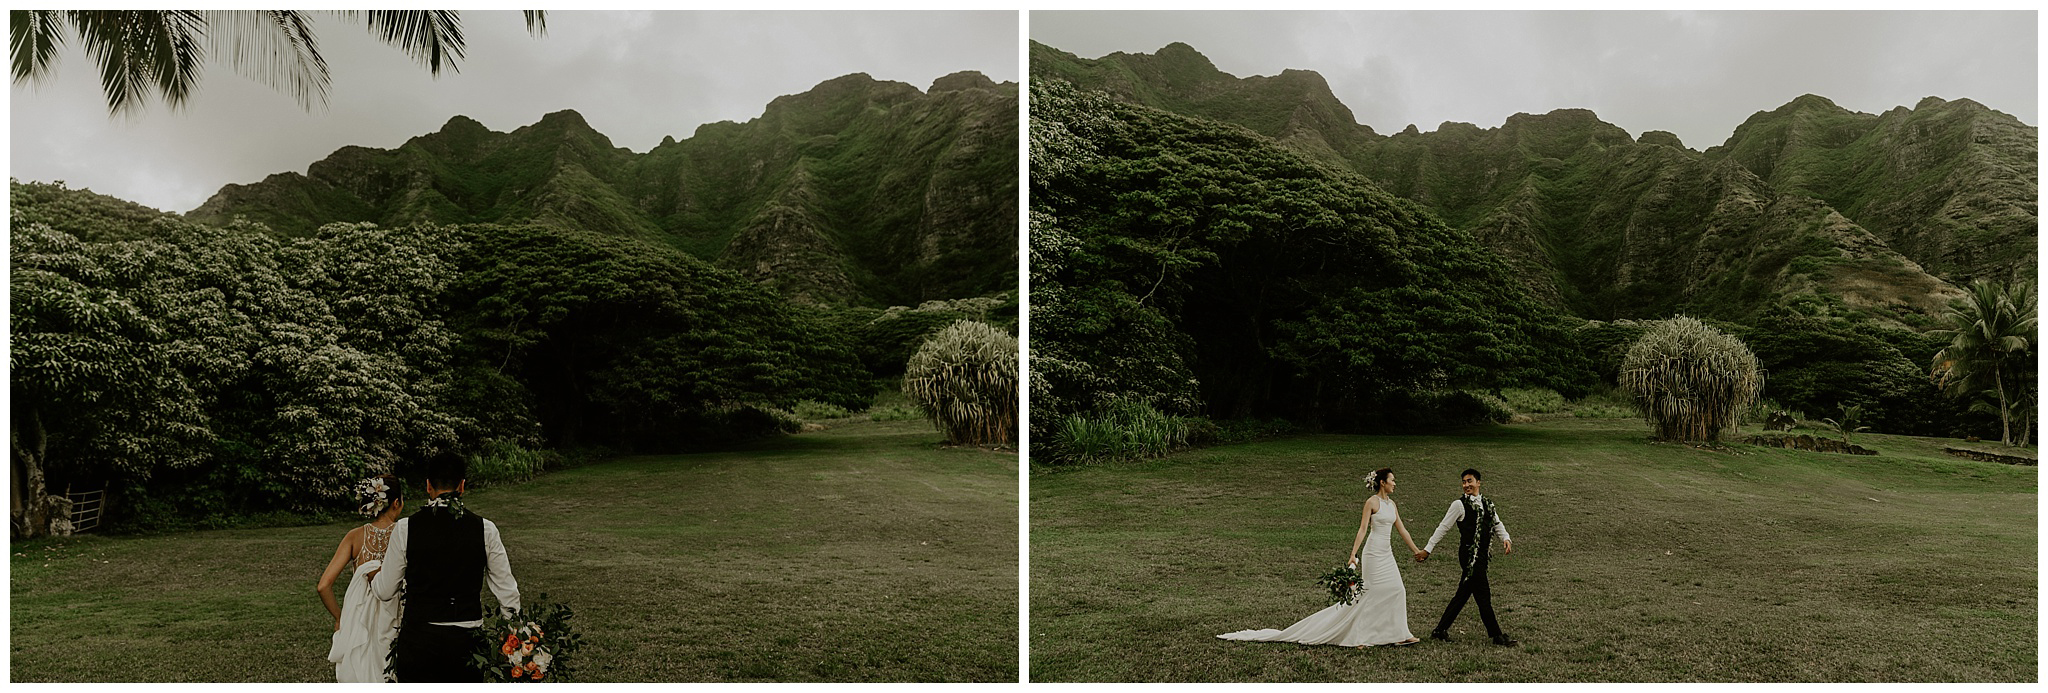 kualoa_ranch_wedding9.jpg